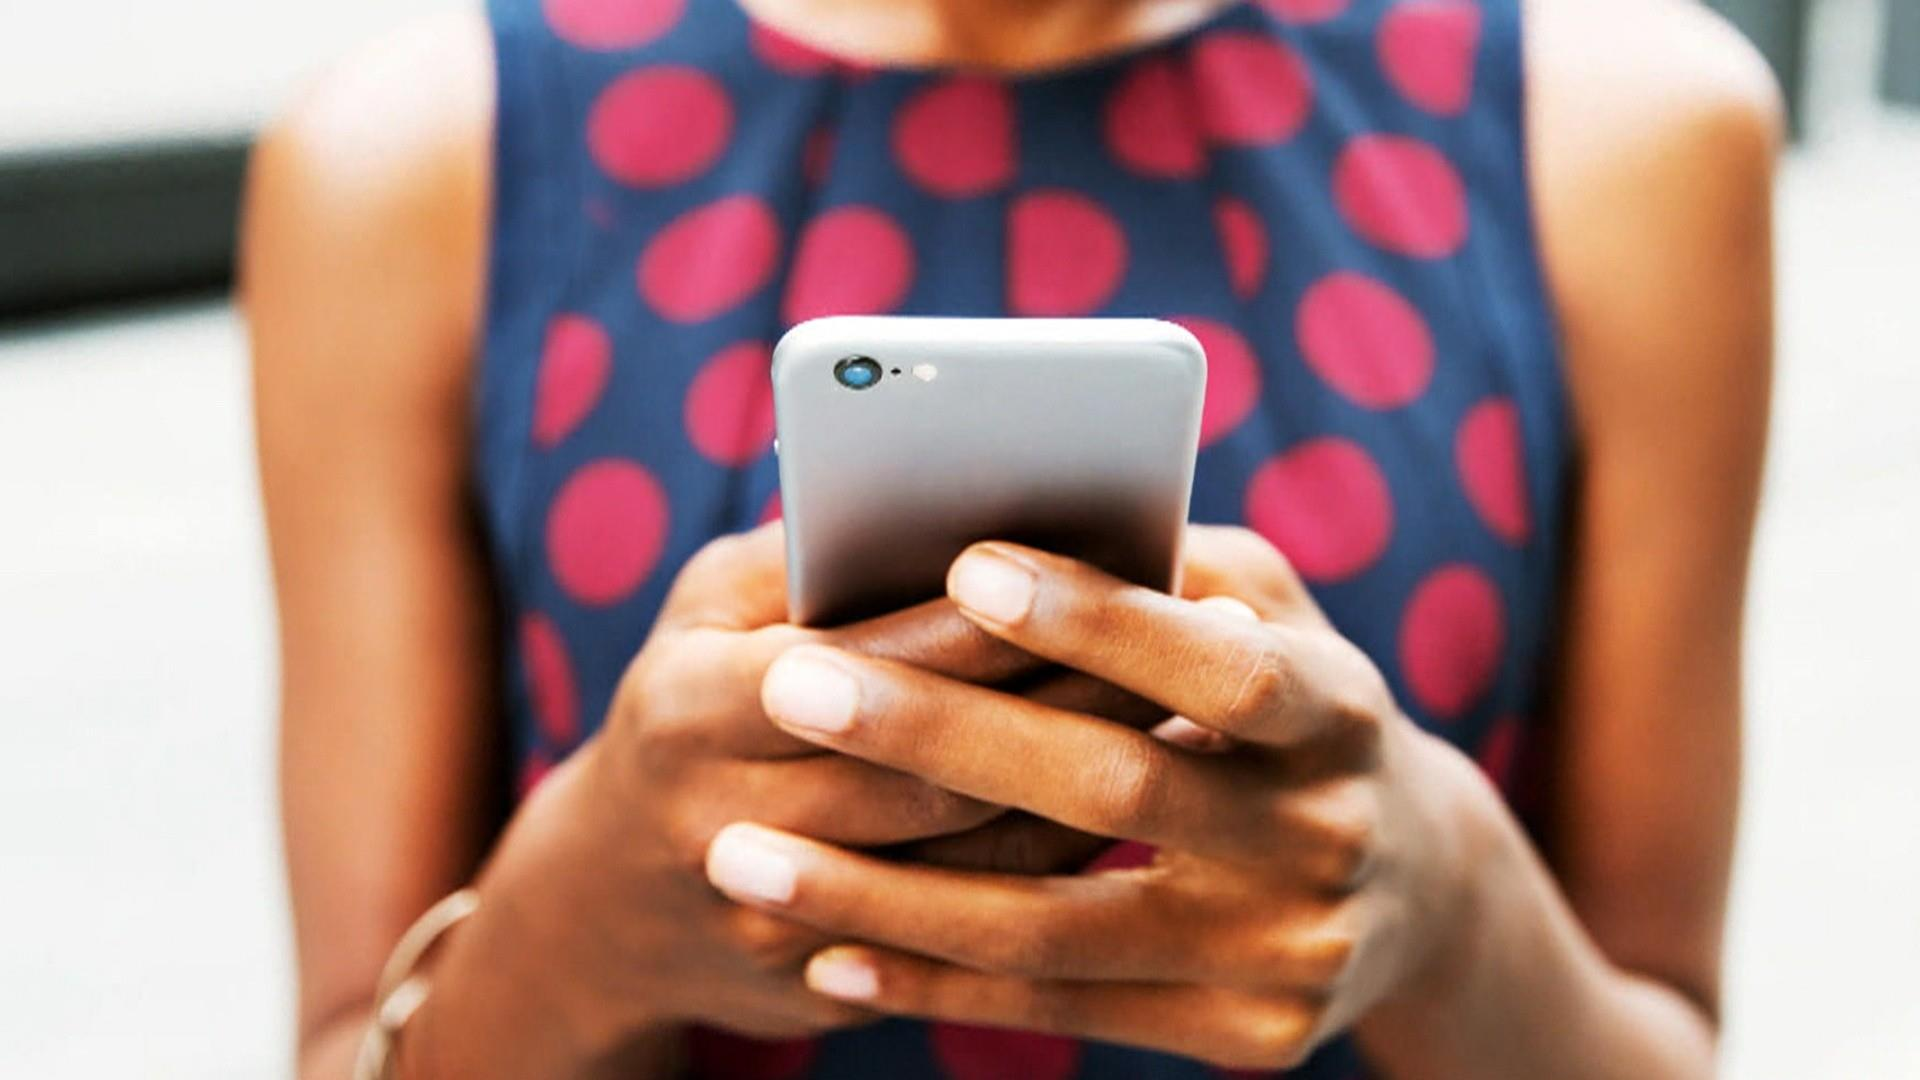 How some parents are using phone apps to monitor their kids